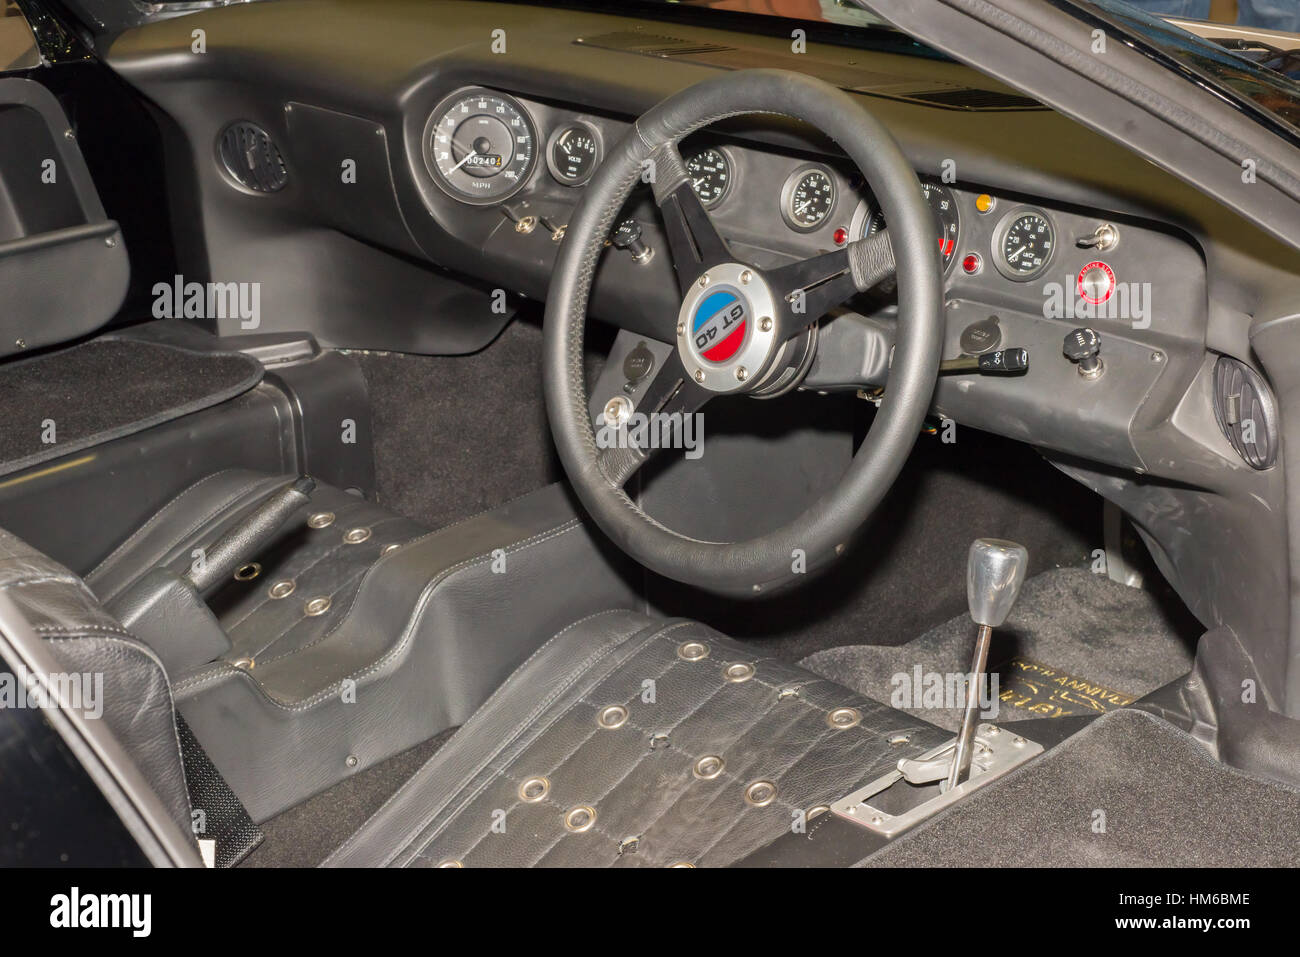 1960s ford gt40 race car right hand drive interior and dashboard at stock photo royalty free. Black Bedroom Furniture Sets. Home Design Ideas